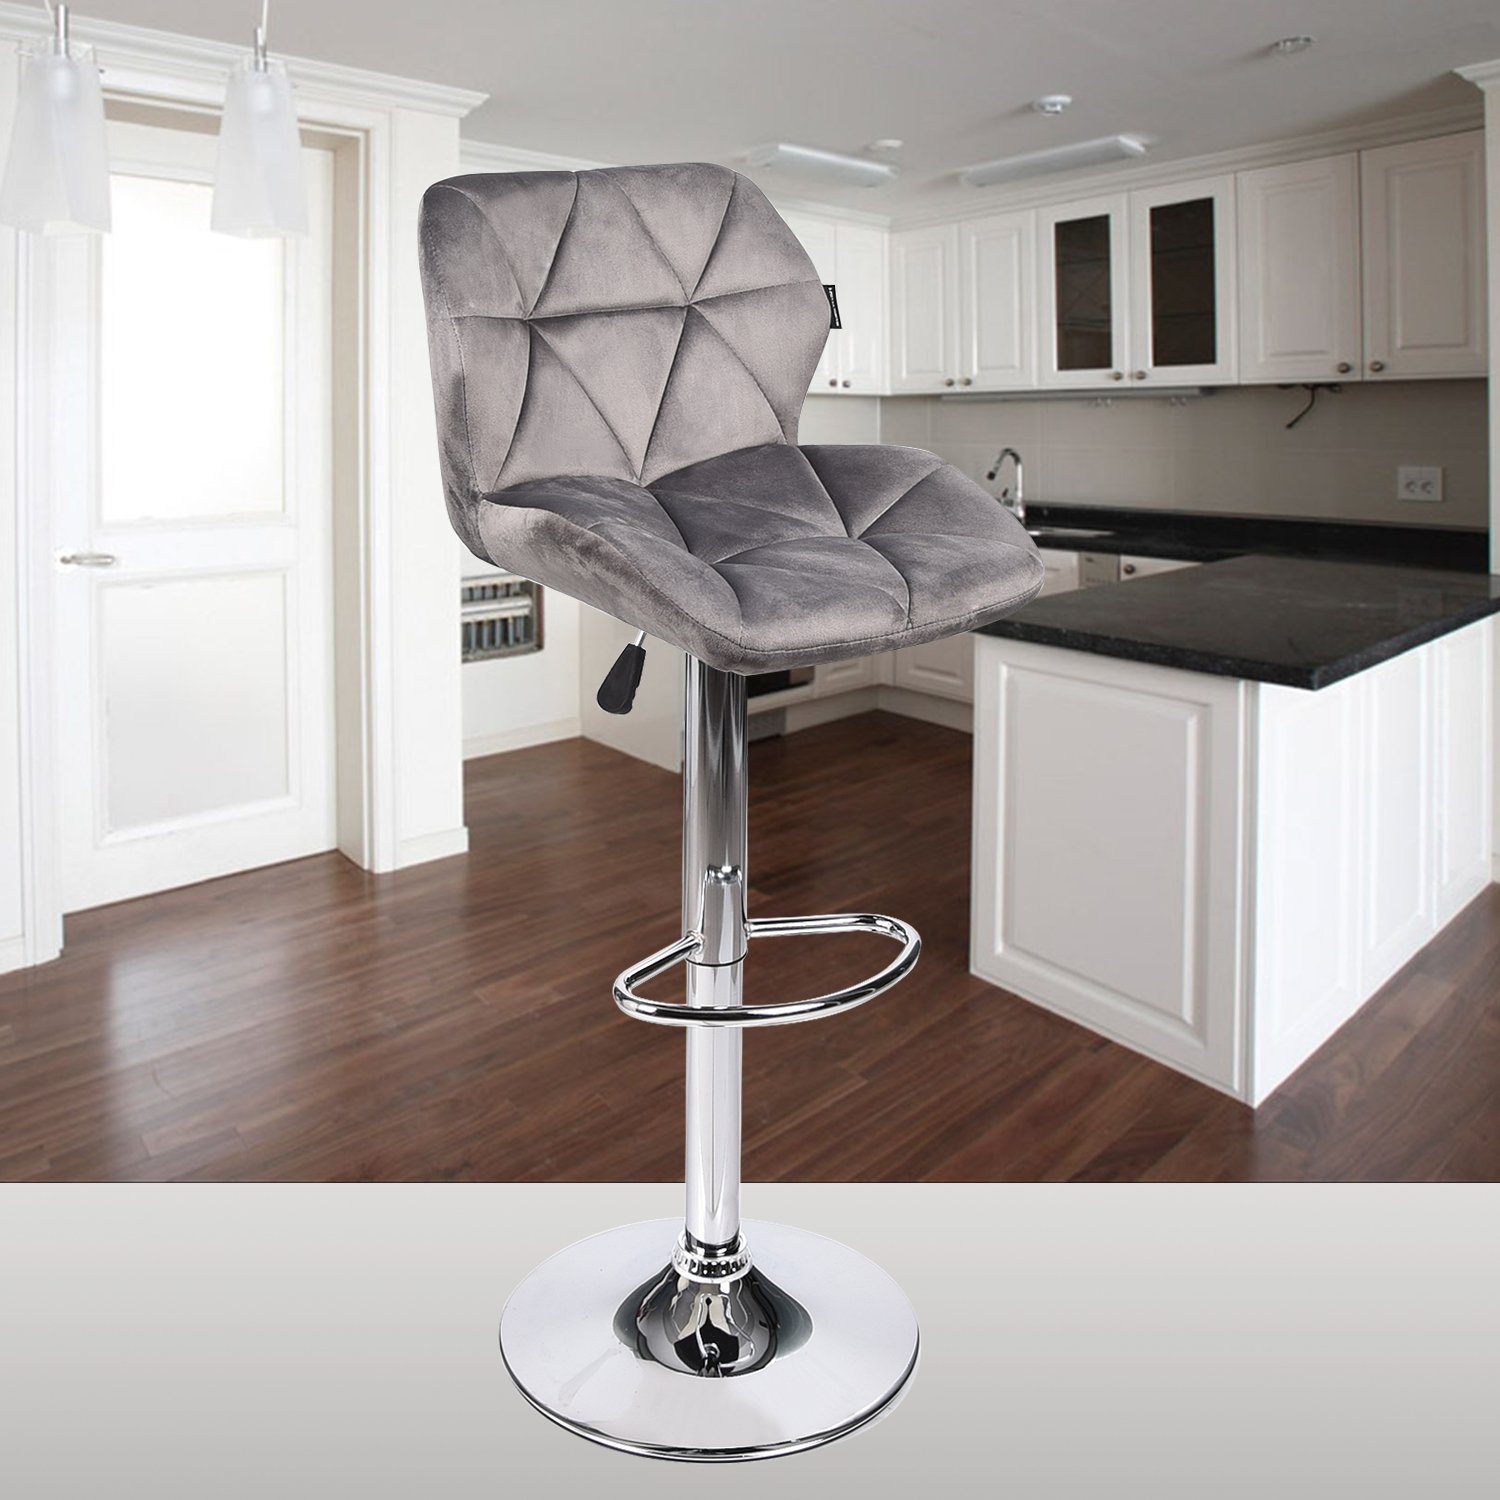 Elecwish Bar Stools Set of 2 White PU Leather Seat with Chrome Base Swivel Dining Chair Barstools Gray Flannel